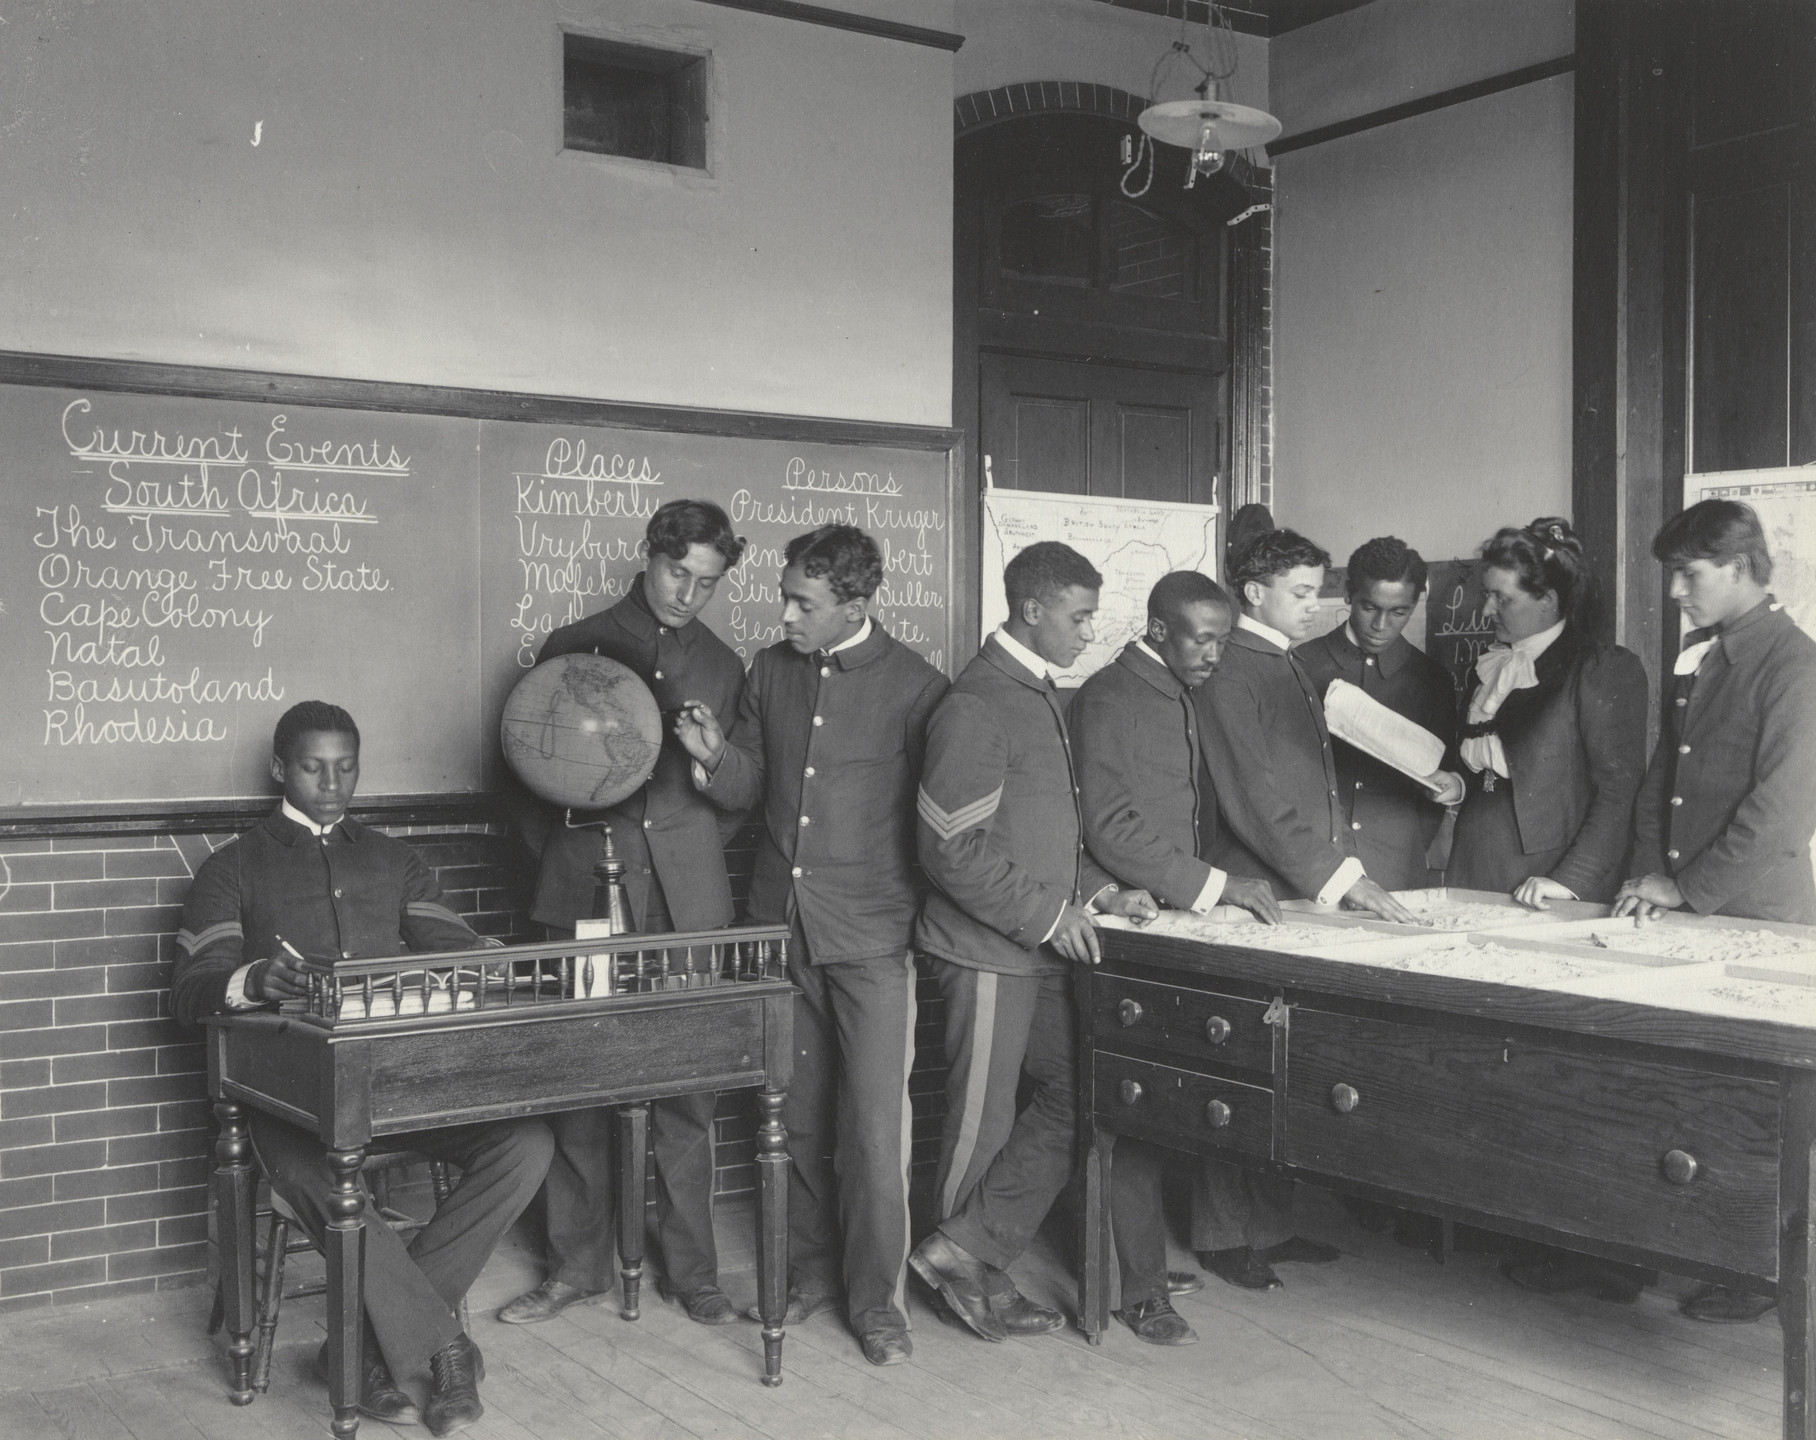 Frances Benjamin Johnston. Geography. Class in current events. 1899-1900